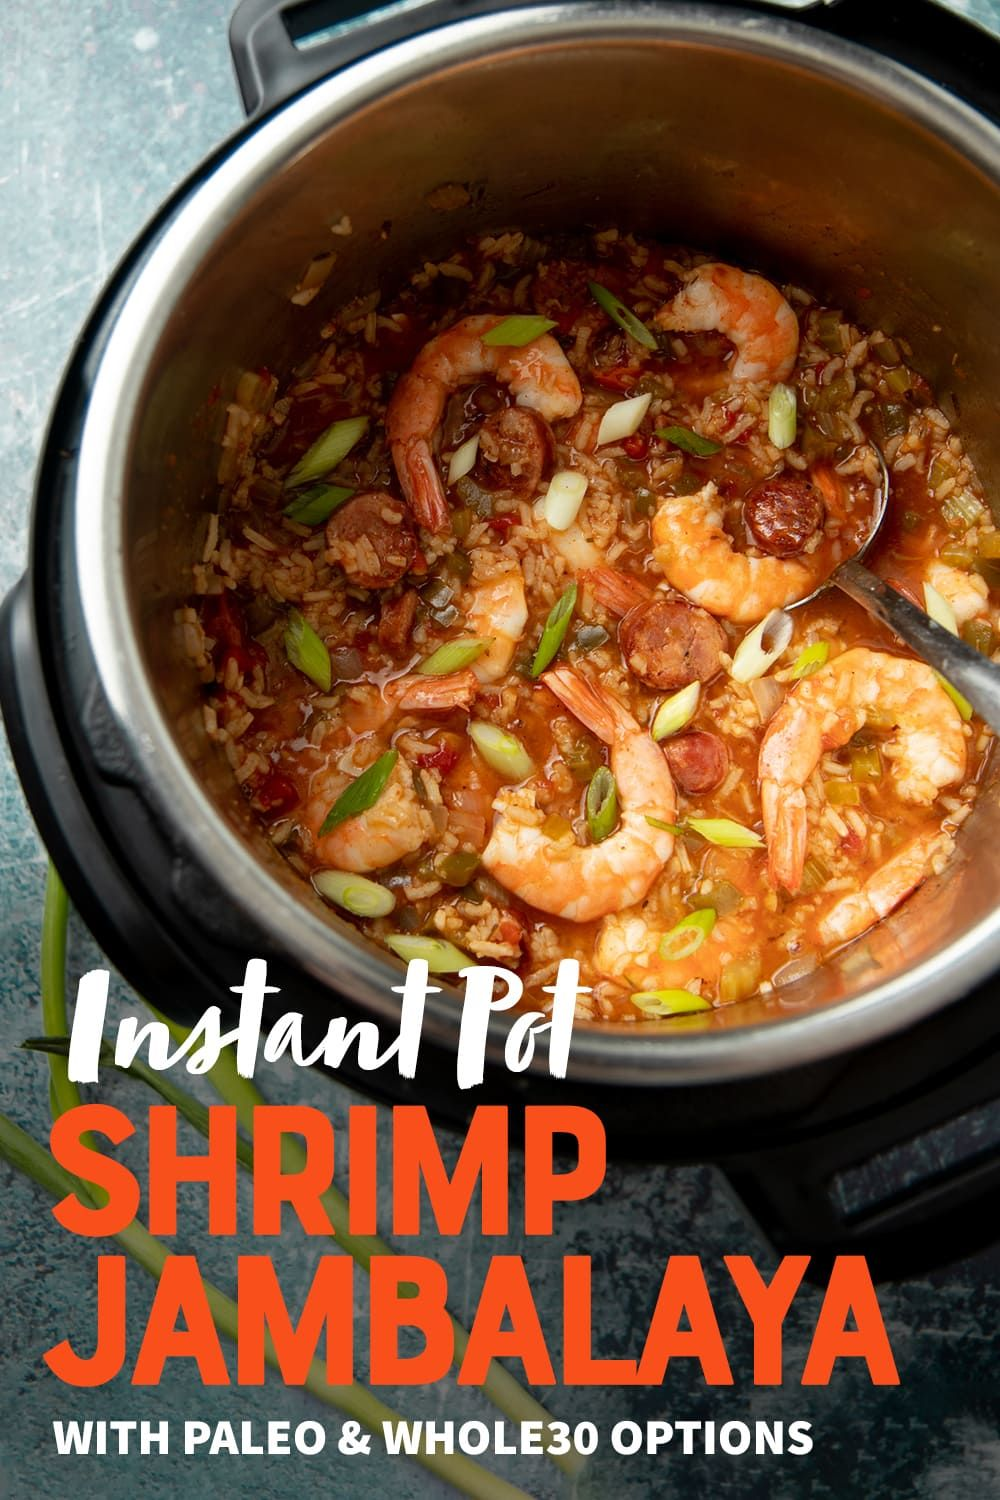 Instant Pot Shrimp Jambalaya (with Paleo & Whole30 option) | Wholefully